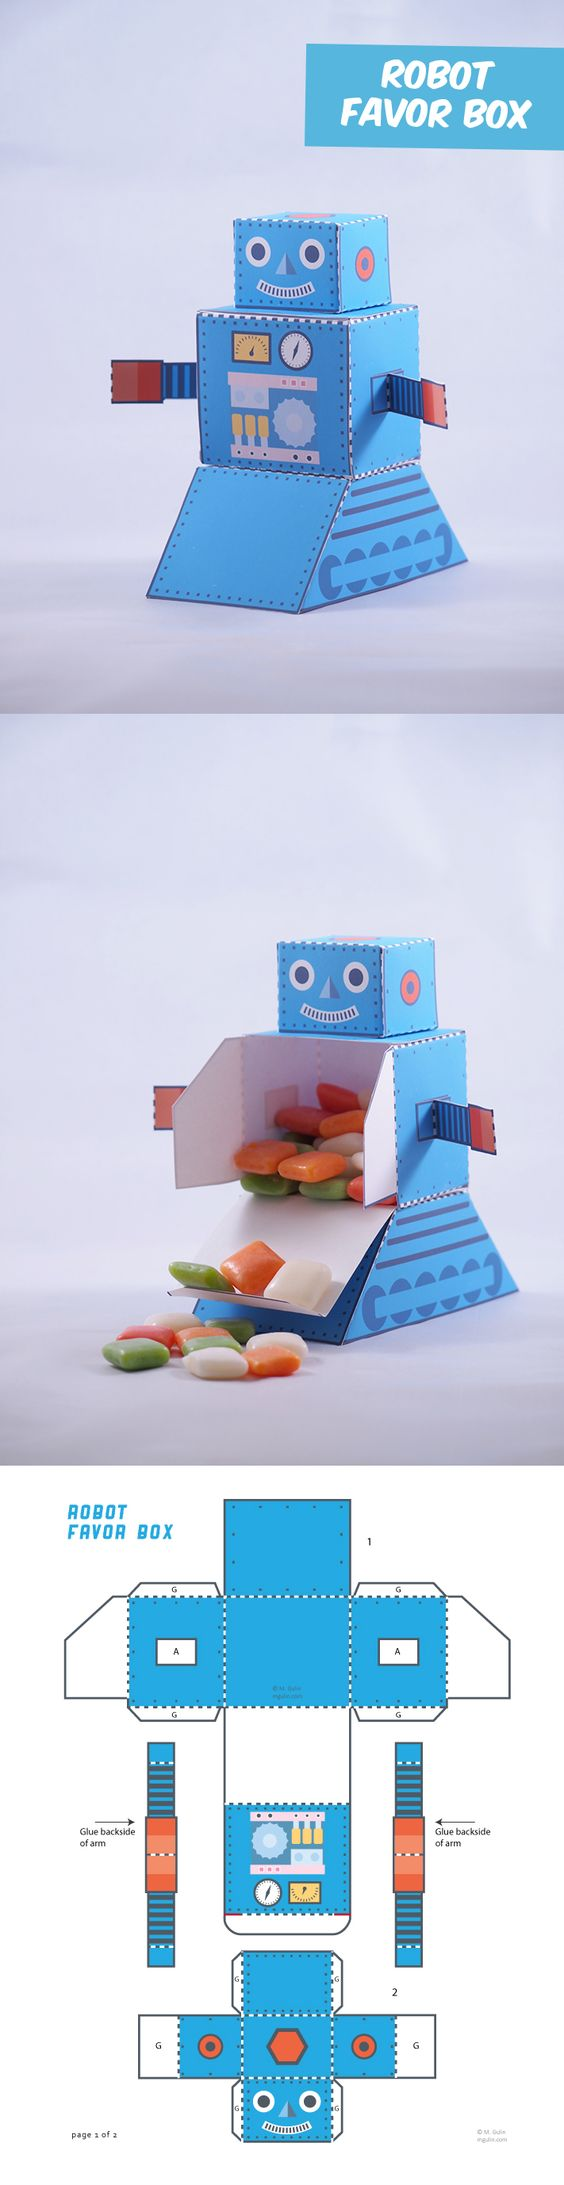 Create Your Own Old School Robot Favor Box Share Your